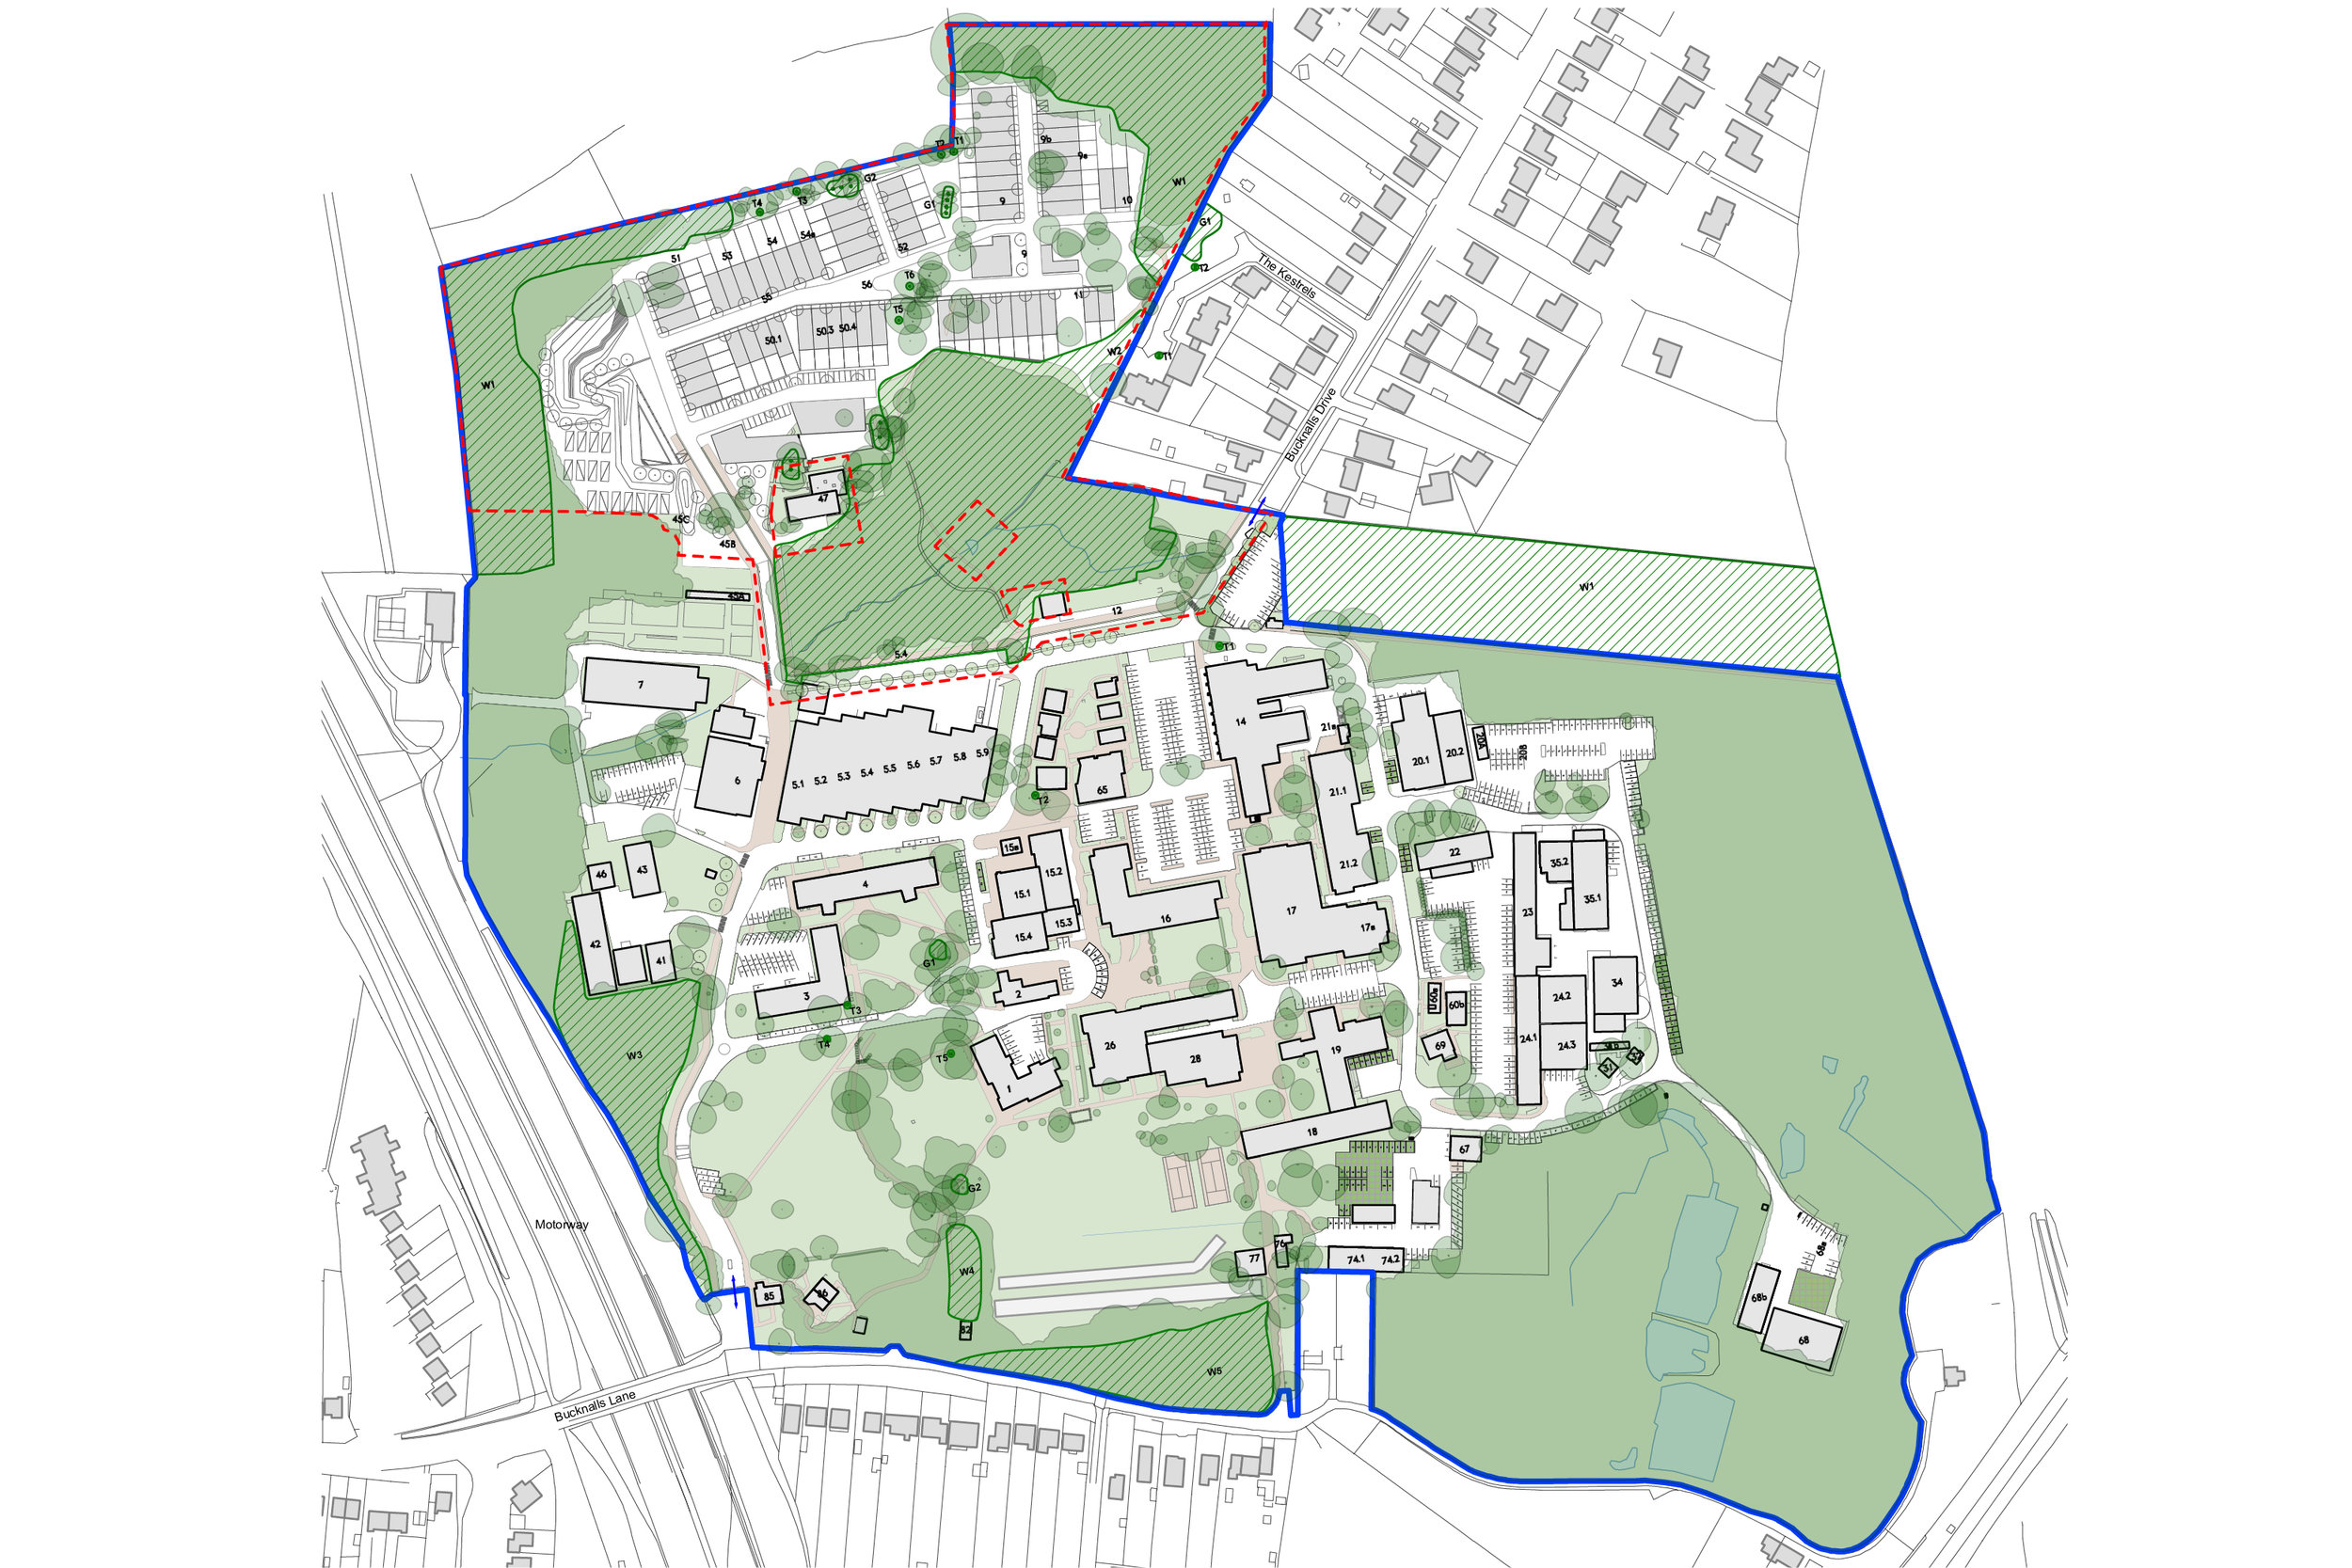 Masterplan of Building Research Establishment Campus in Watford